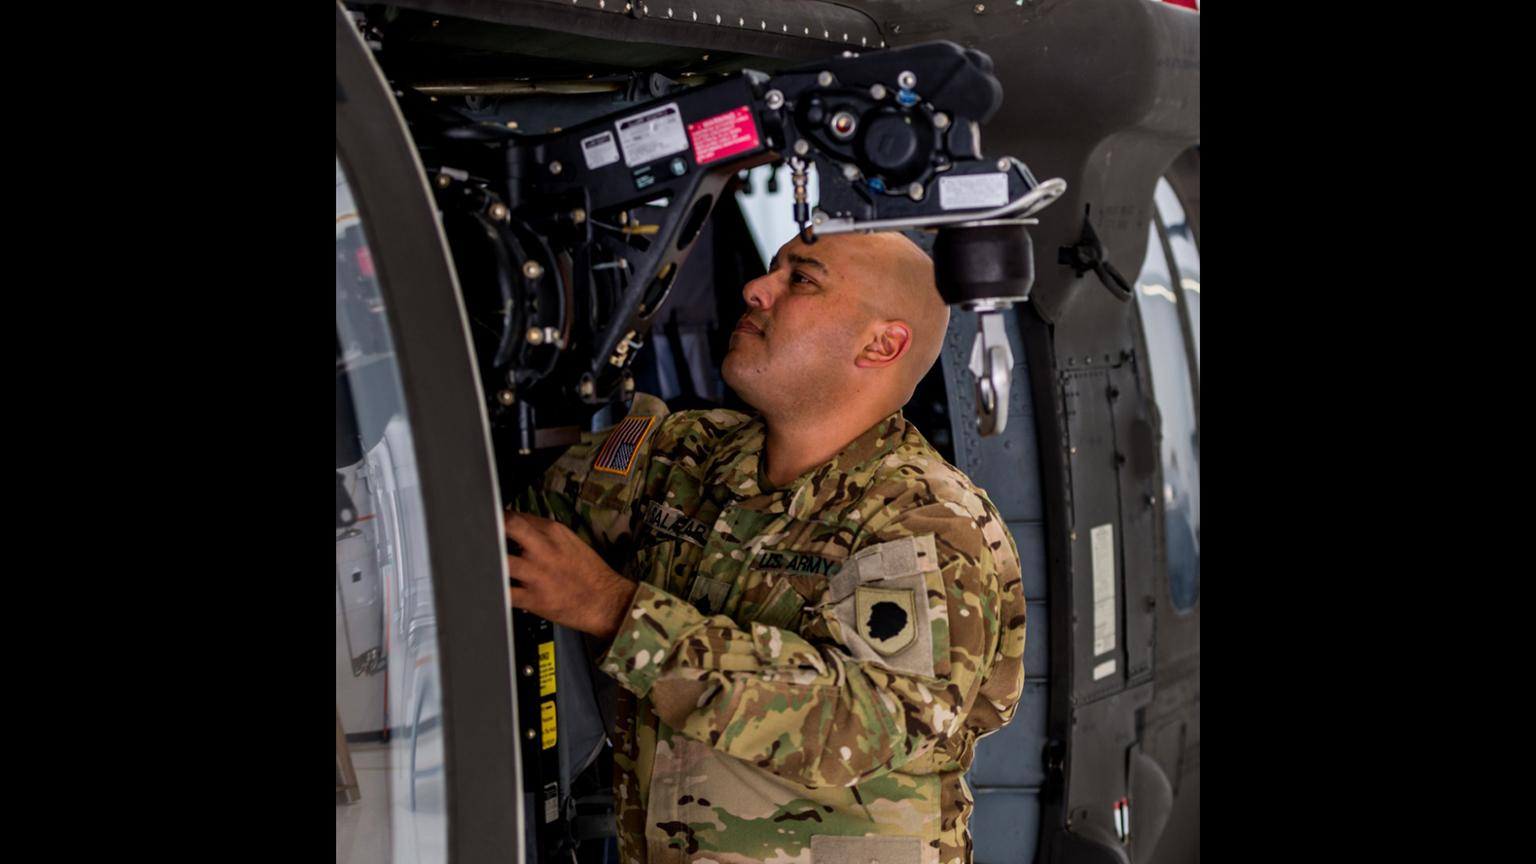 Sgt. Andres Salazar inspects an internal hoist on the UH-60 Blackhawk helicopter at the Kankakee Army Aviation Support Facility on Sept. 12, 2018. (Sgt. Stephen Gifford / Illinois National Guard)